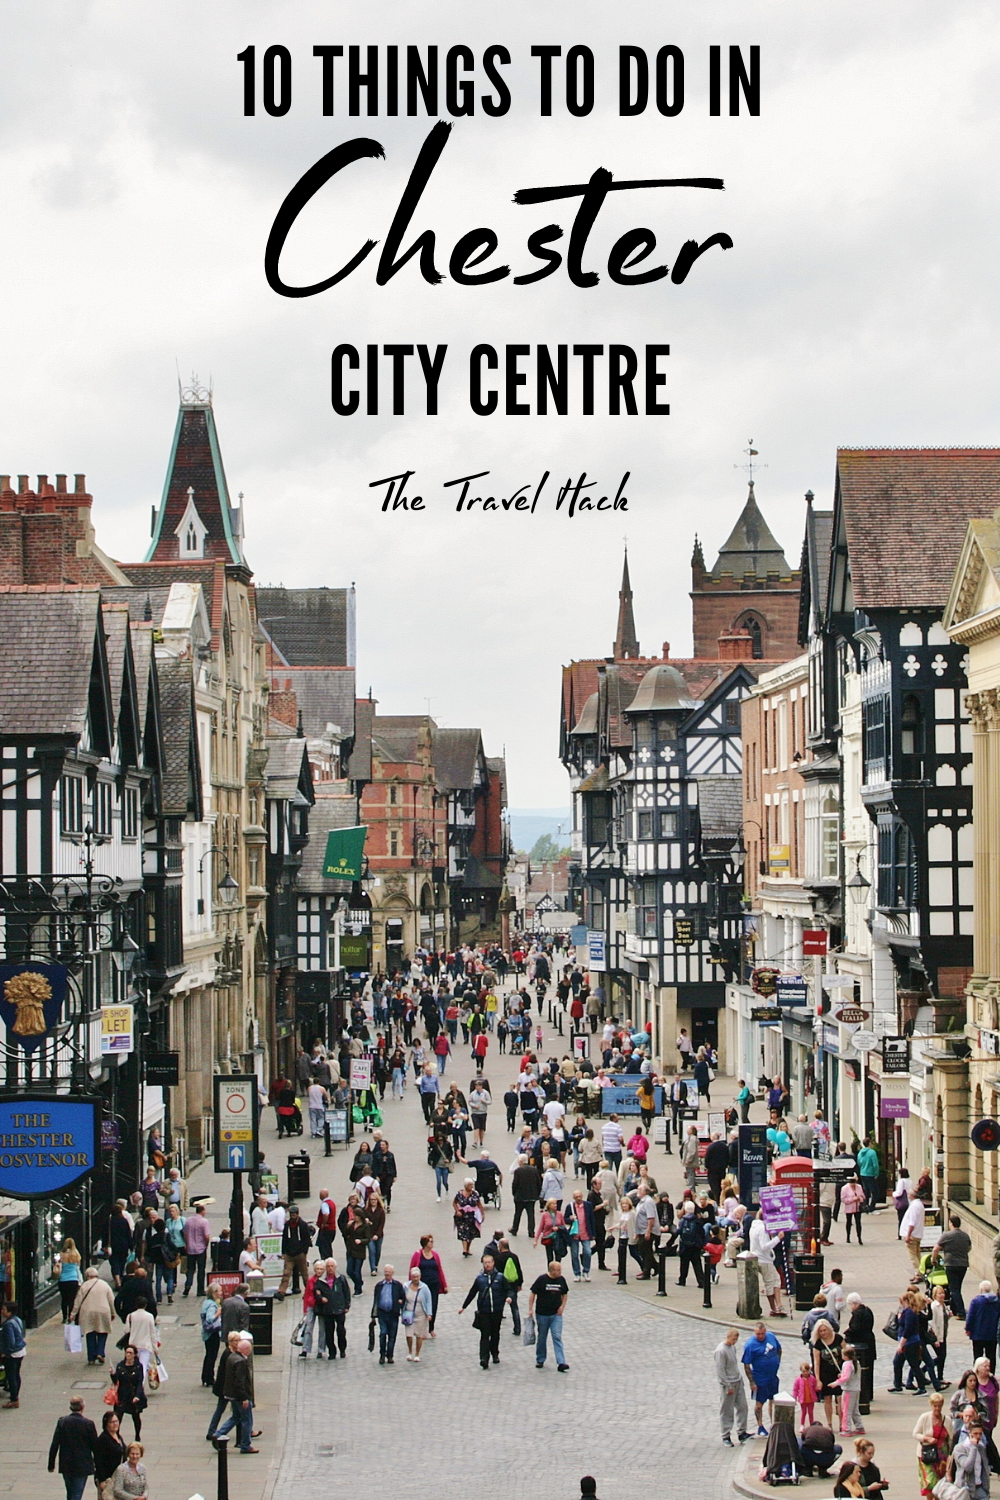 10 things to do in chester city centre